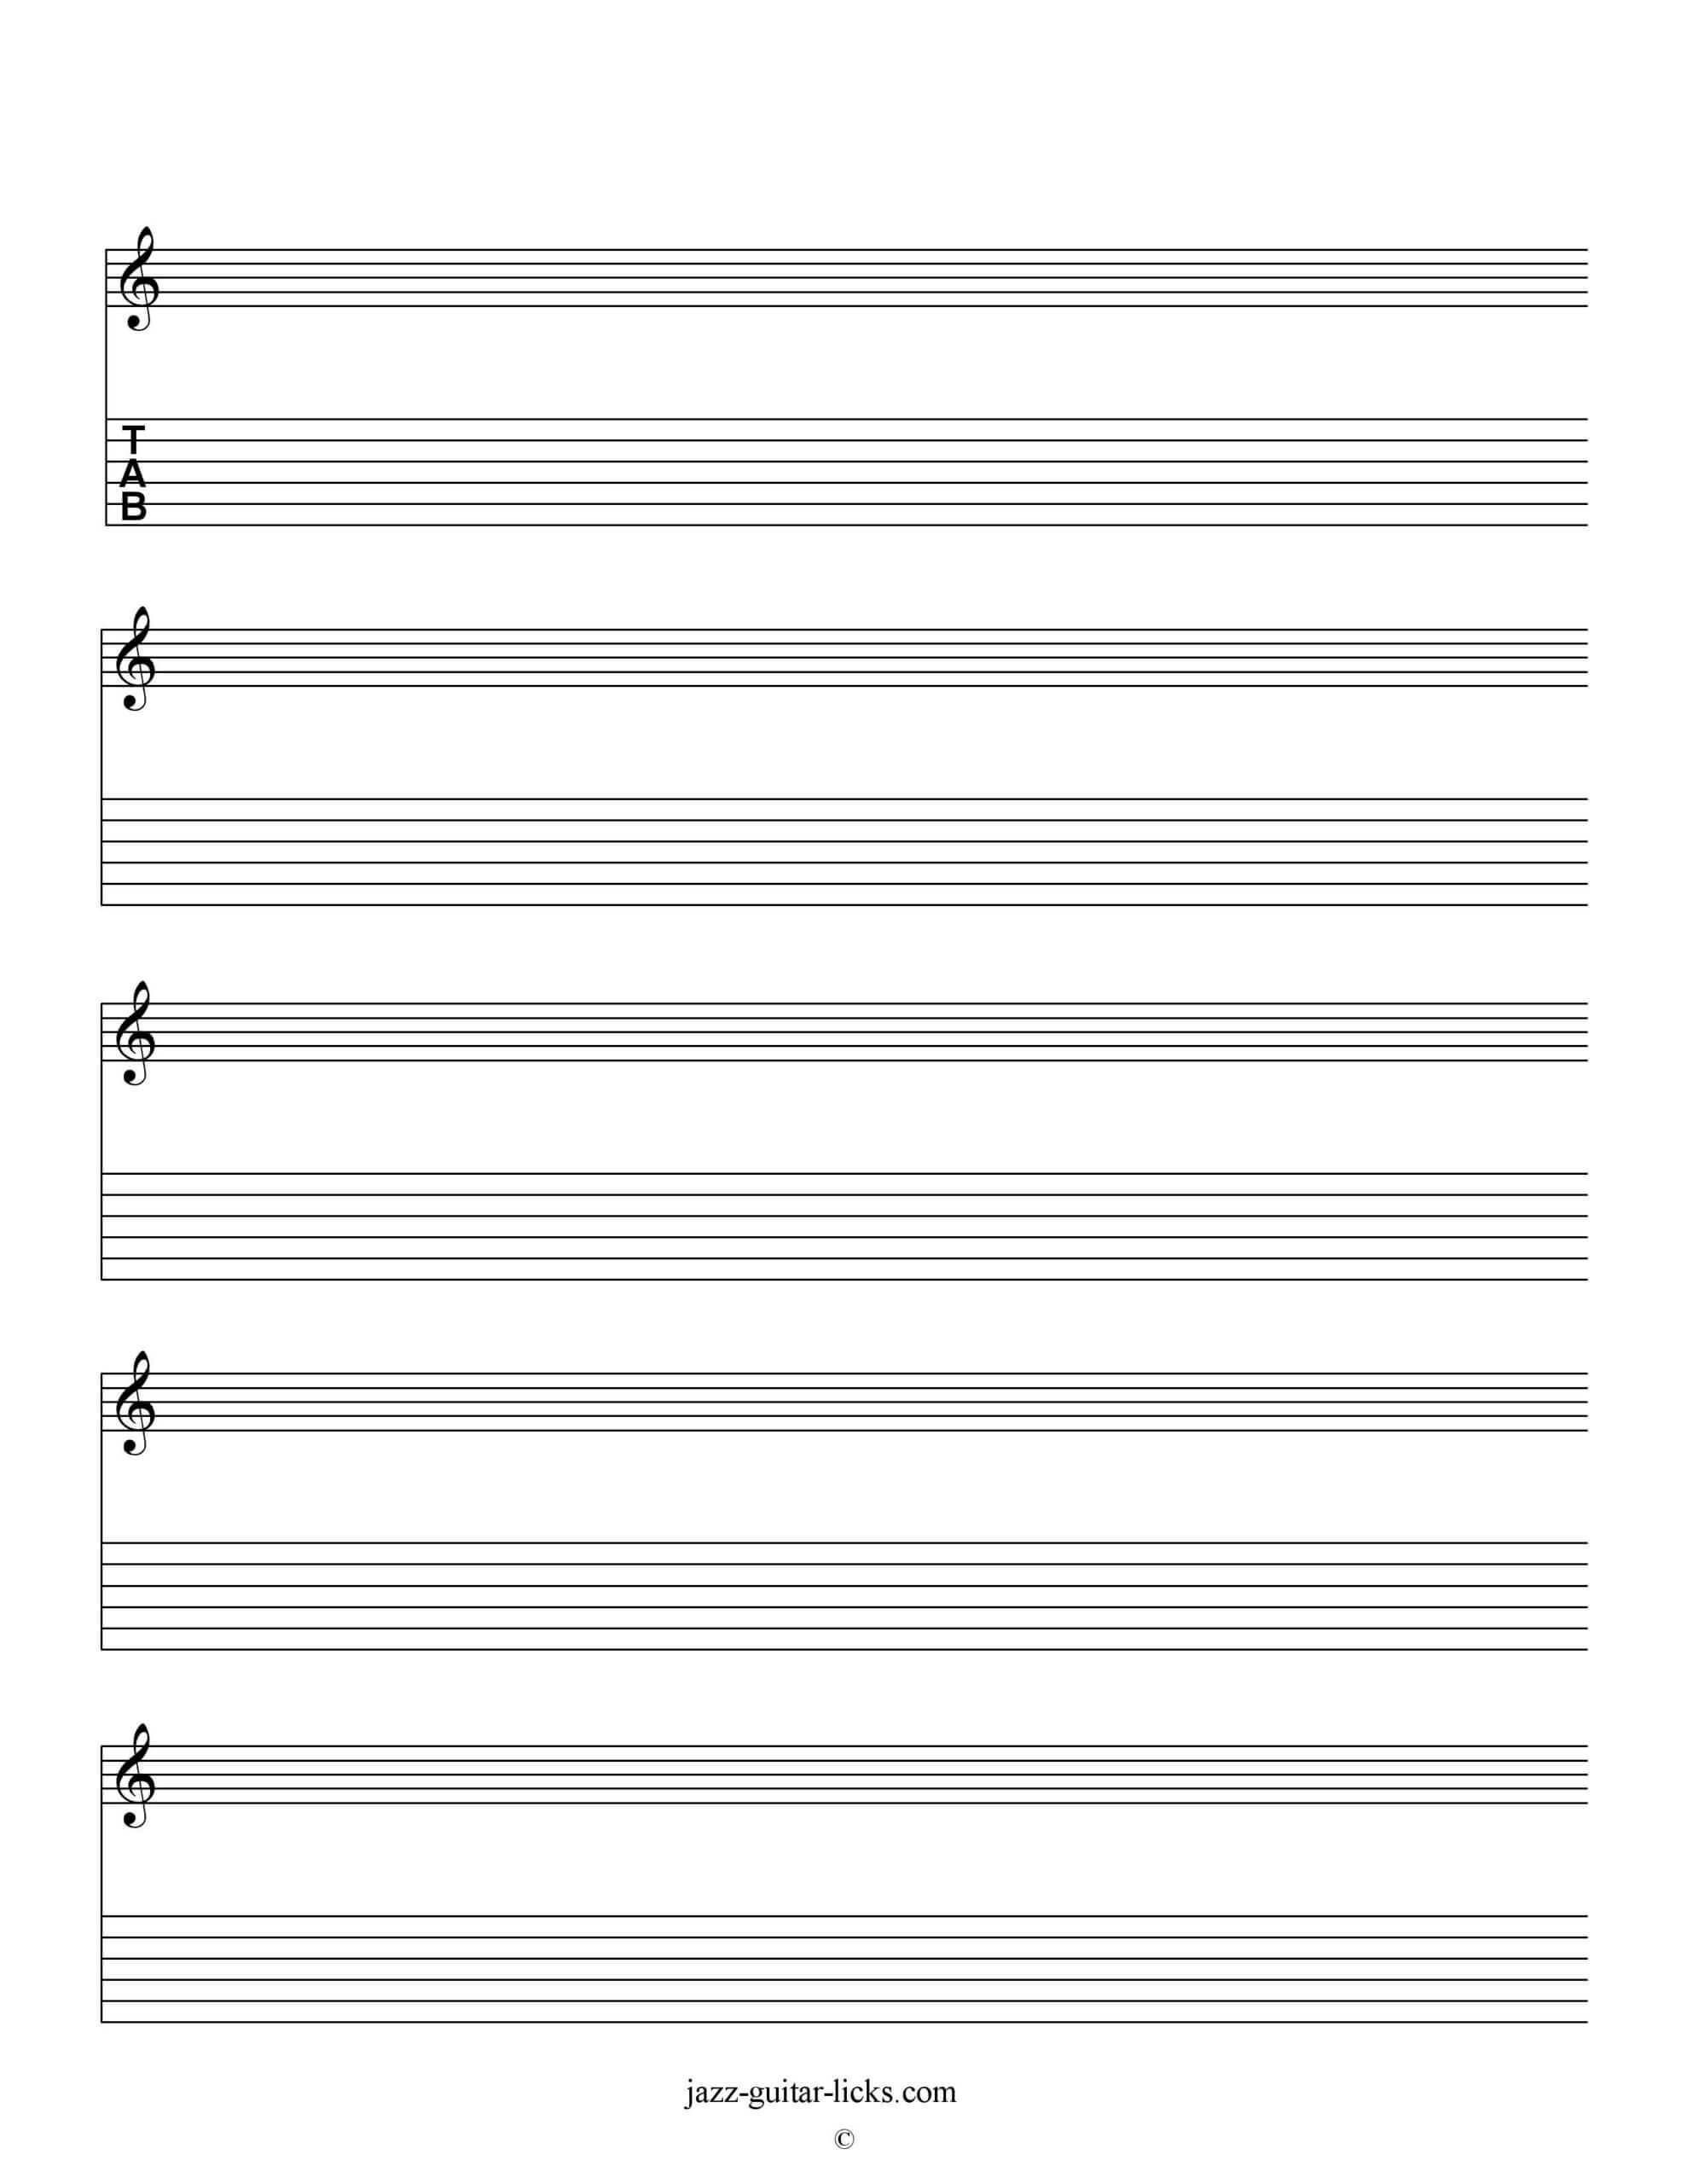 Printable Blank Staves And Tabs - Free Music Sheet | Jazz Throughout Blank Sheet Music Template For Word